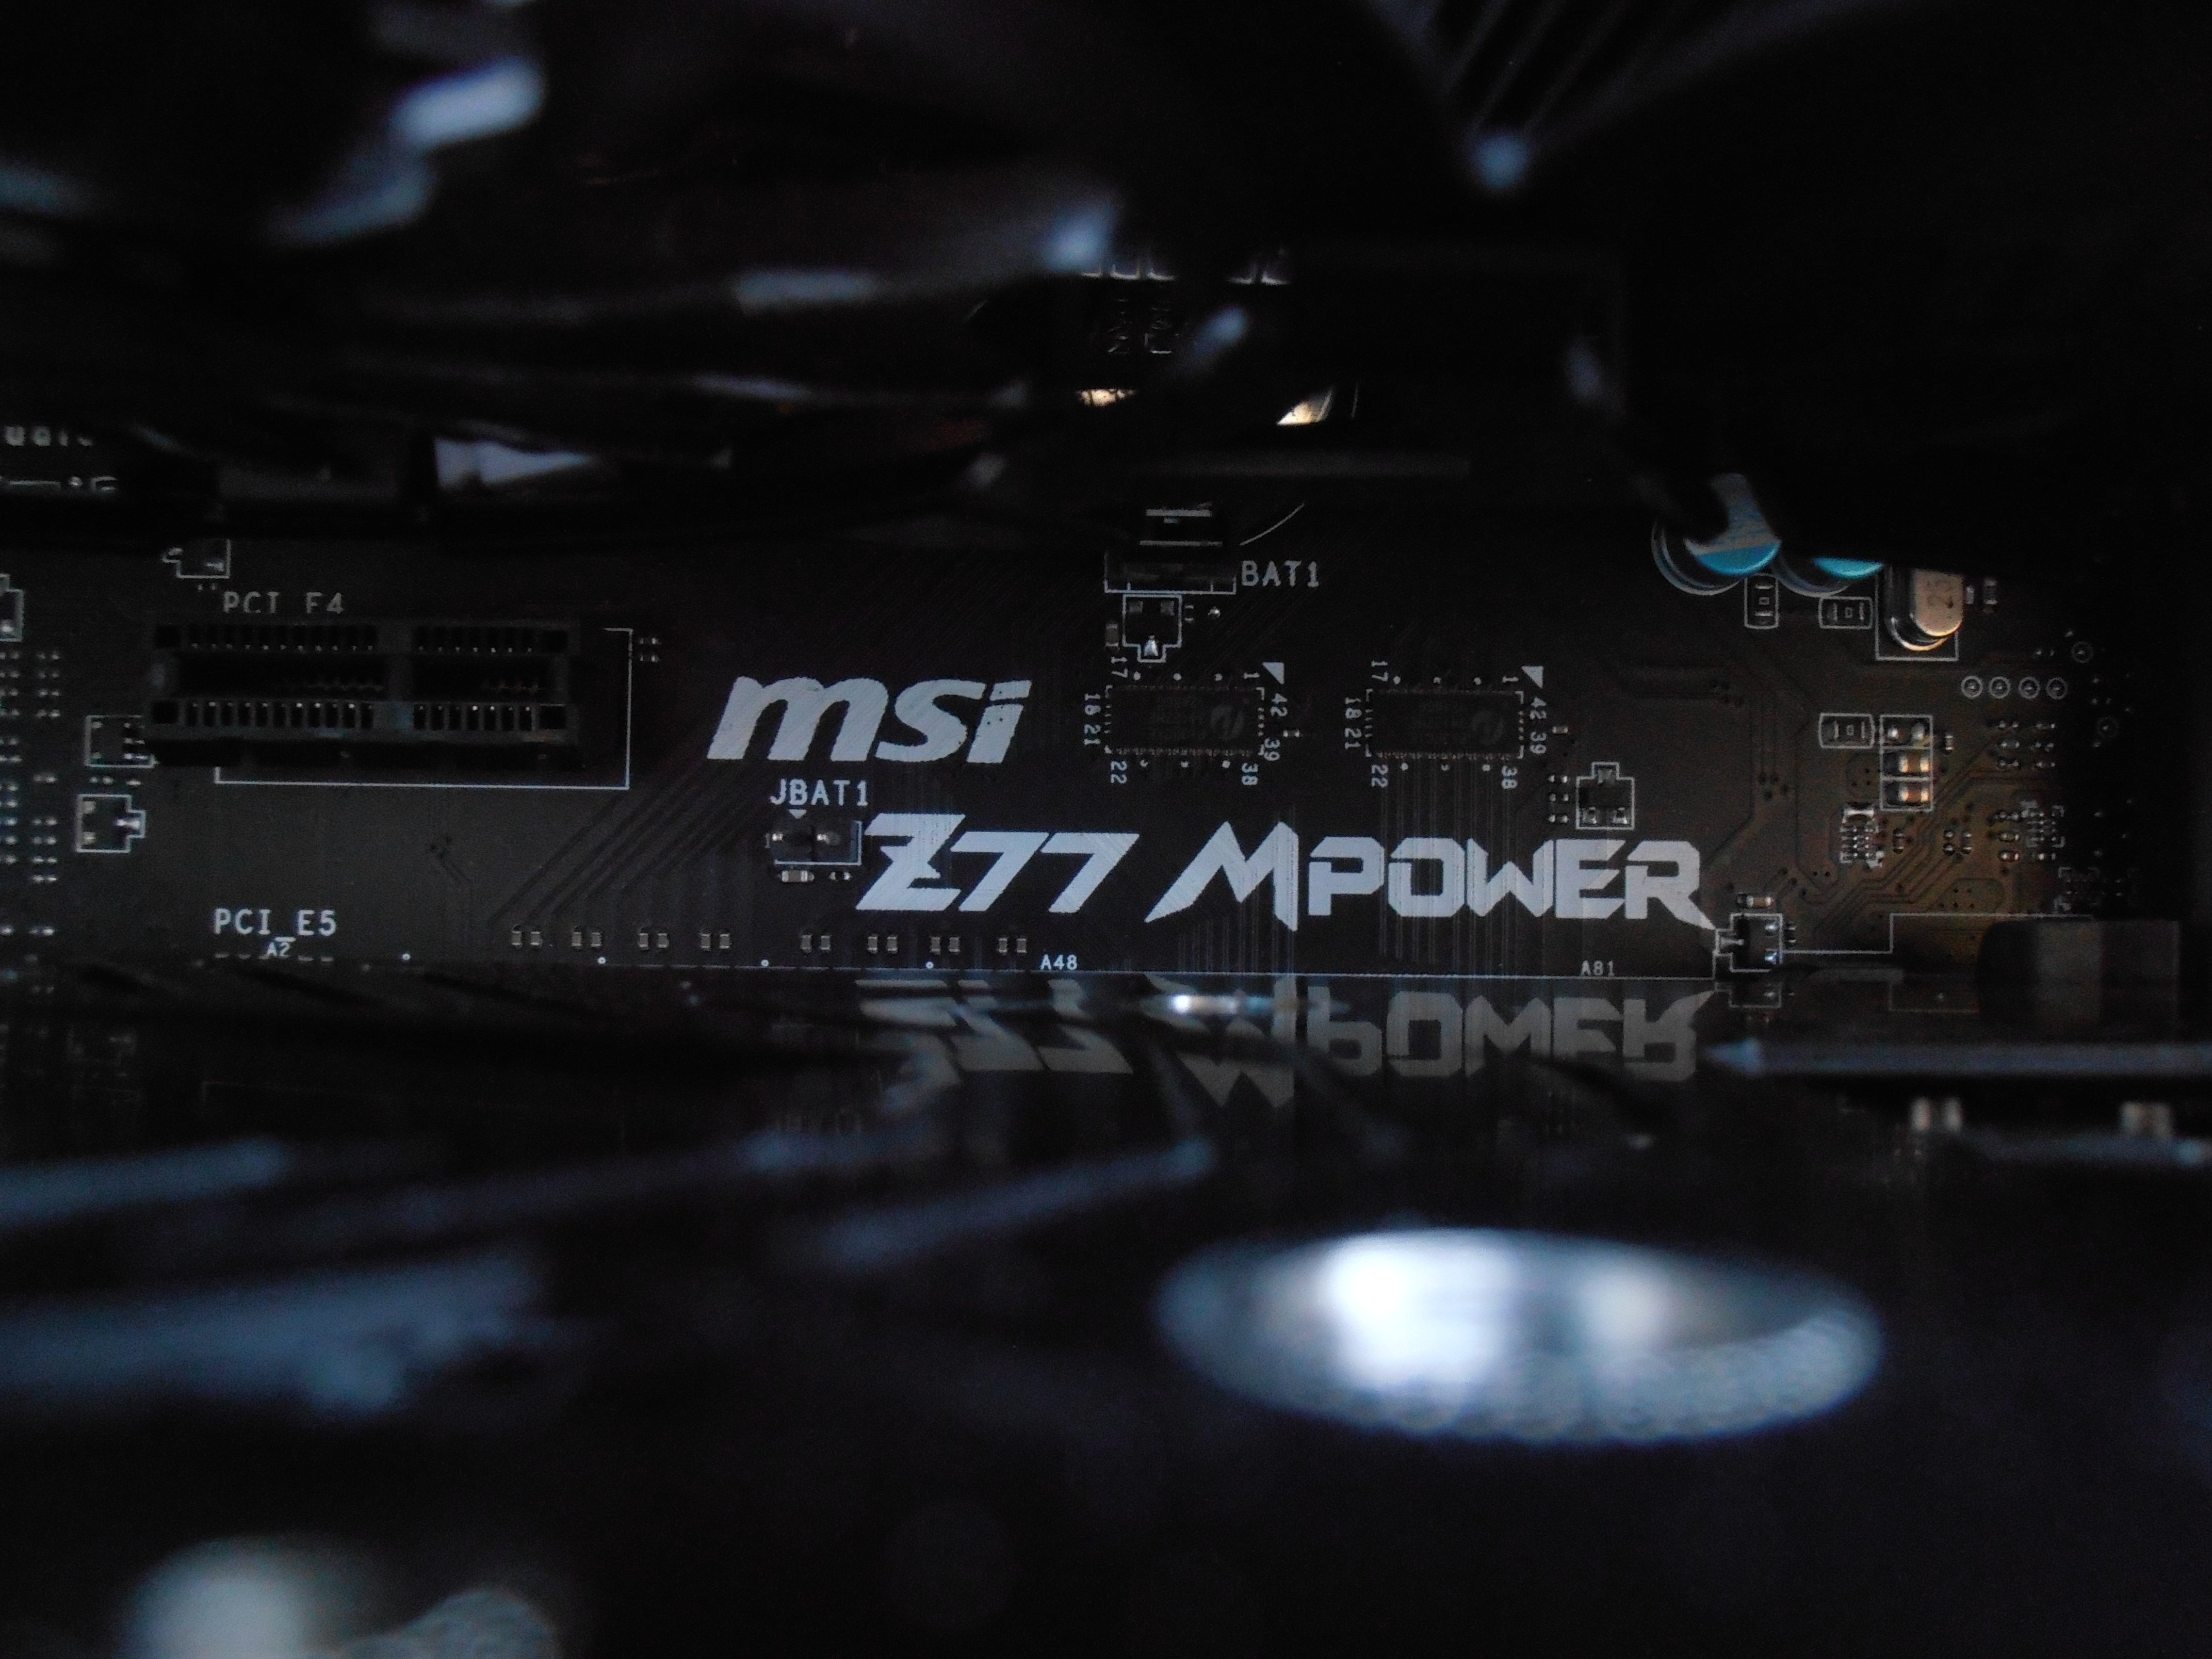 MSI Z77 Mpower Motherboard 4K wallpaper 4288x3216 589769 4288x3216